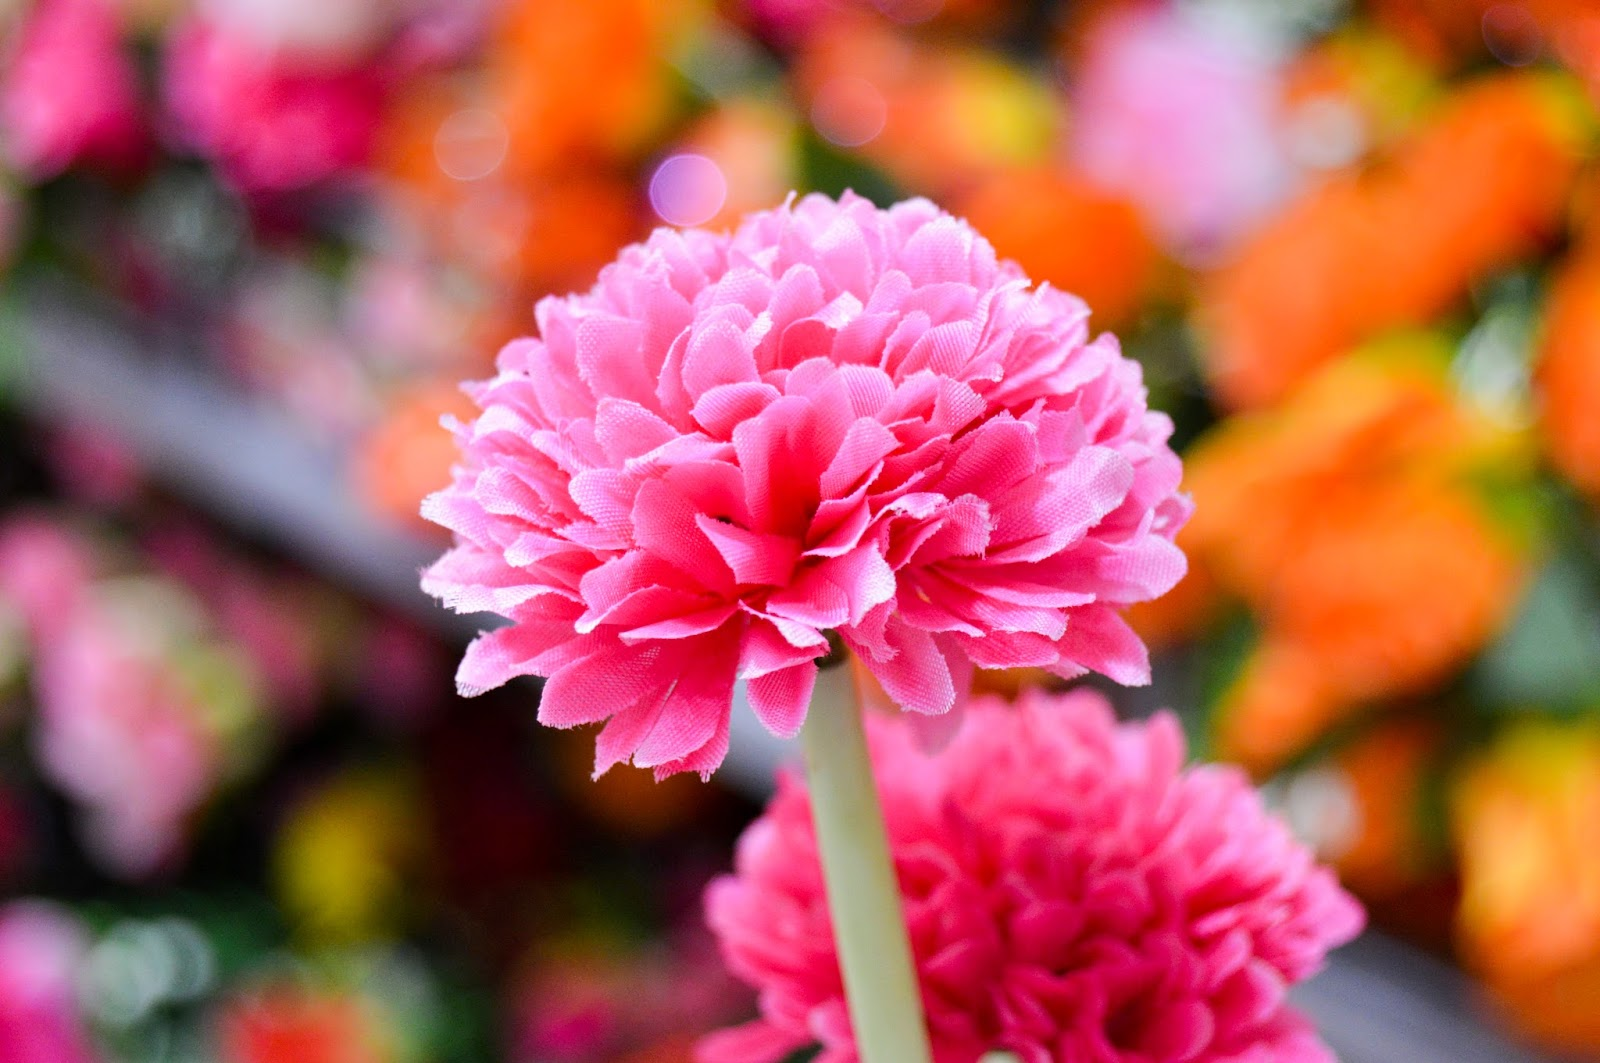 Beautiful Pink Flower Free Stock Photos & Wallpapers